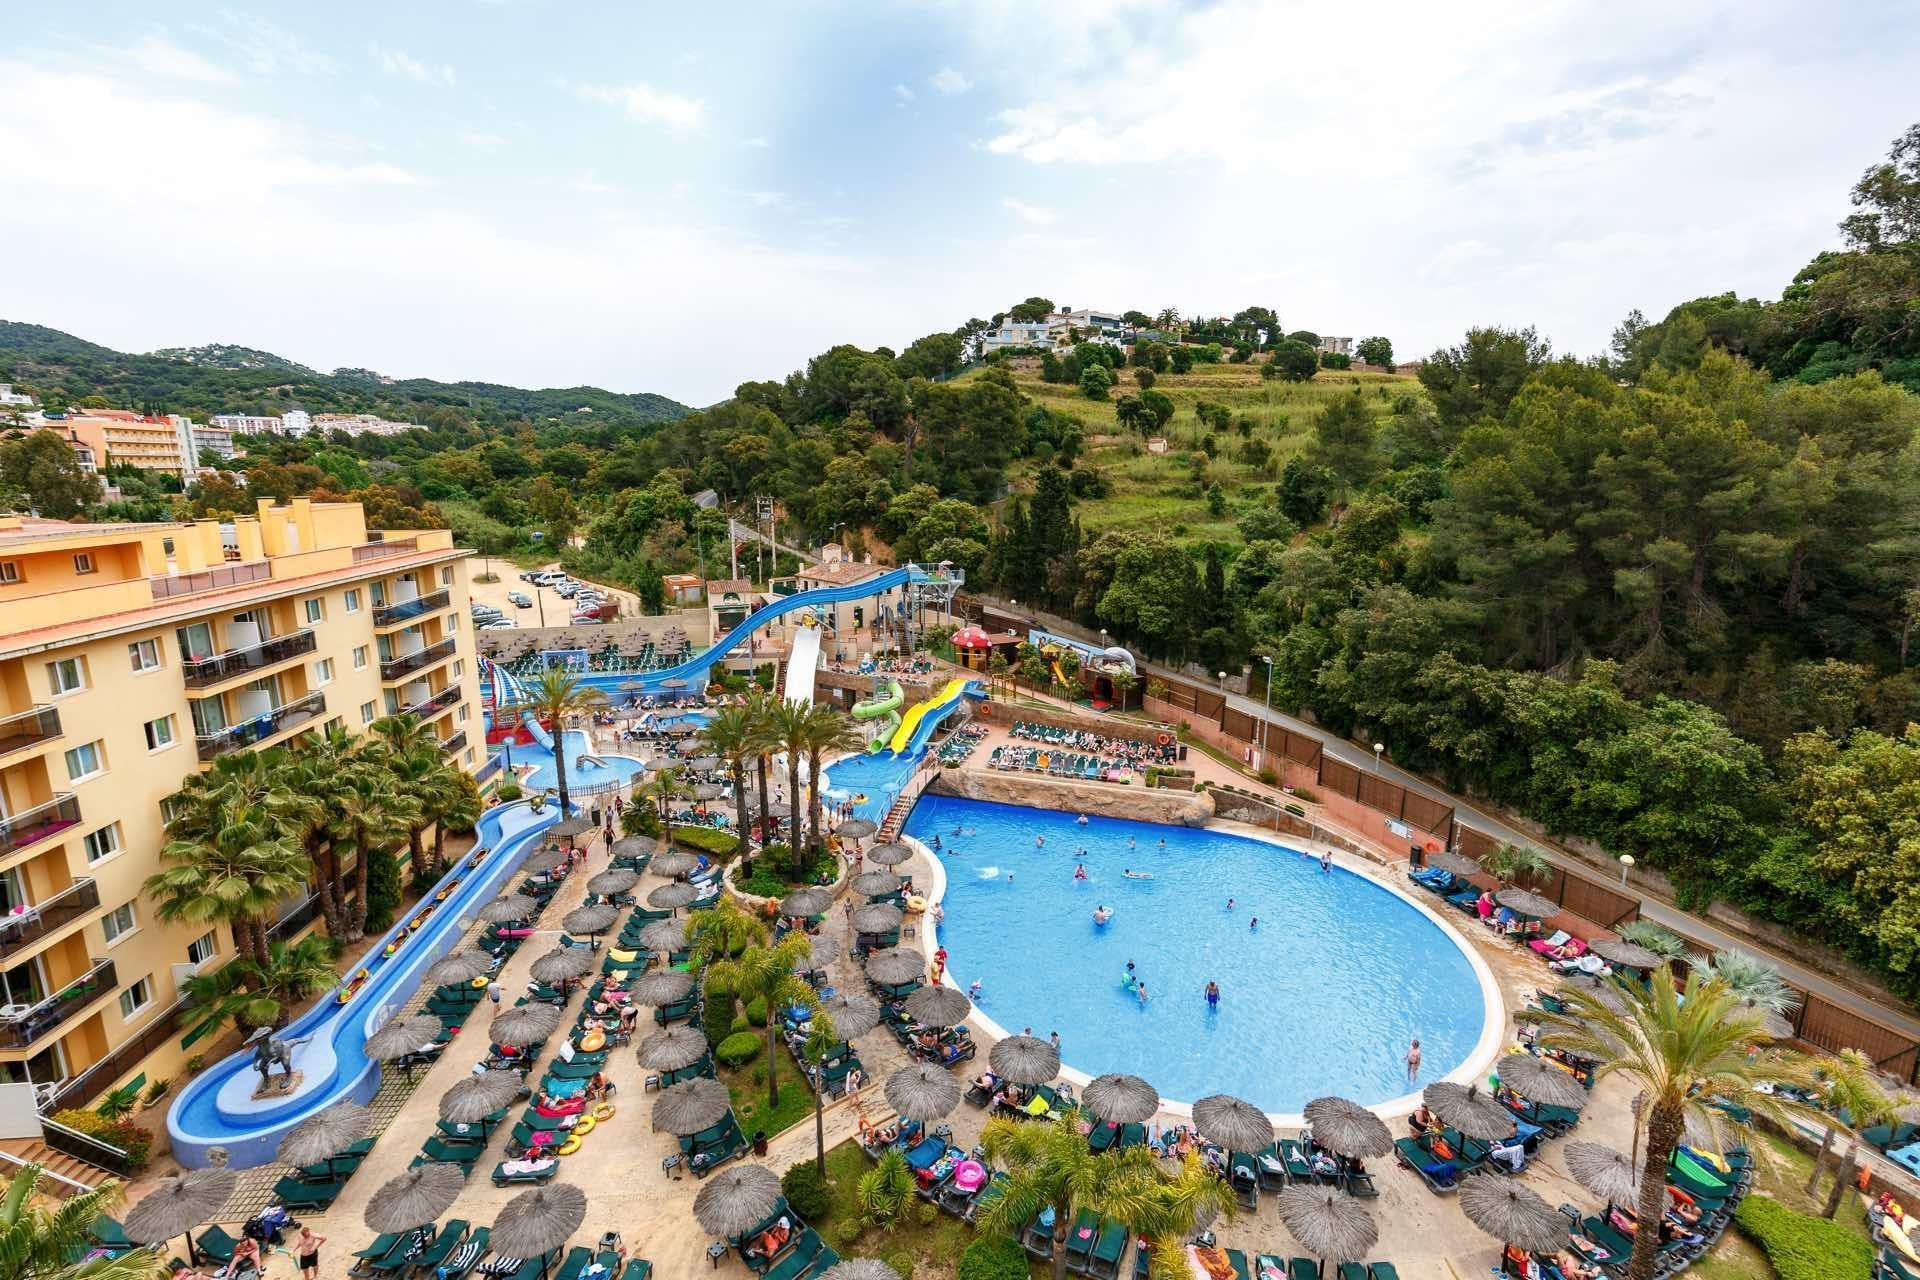 Rosamar Garden Resort in Lloret de Mar, Costa Brava, Spain